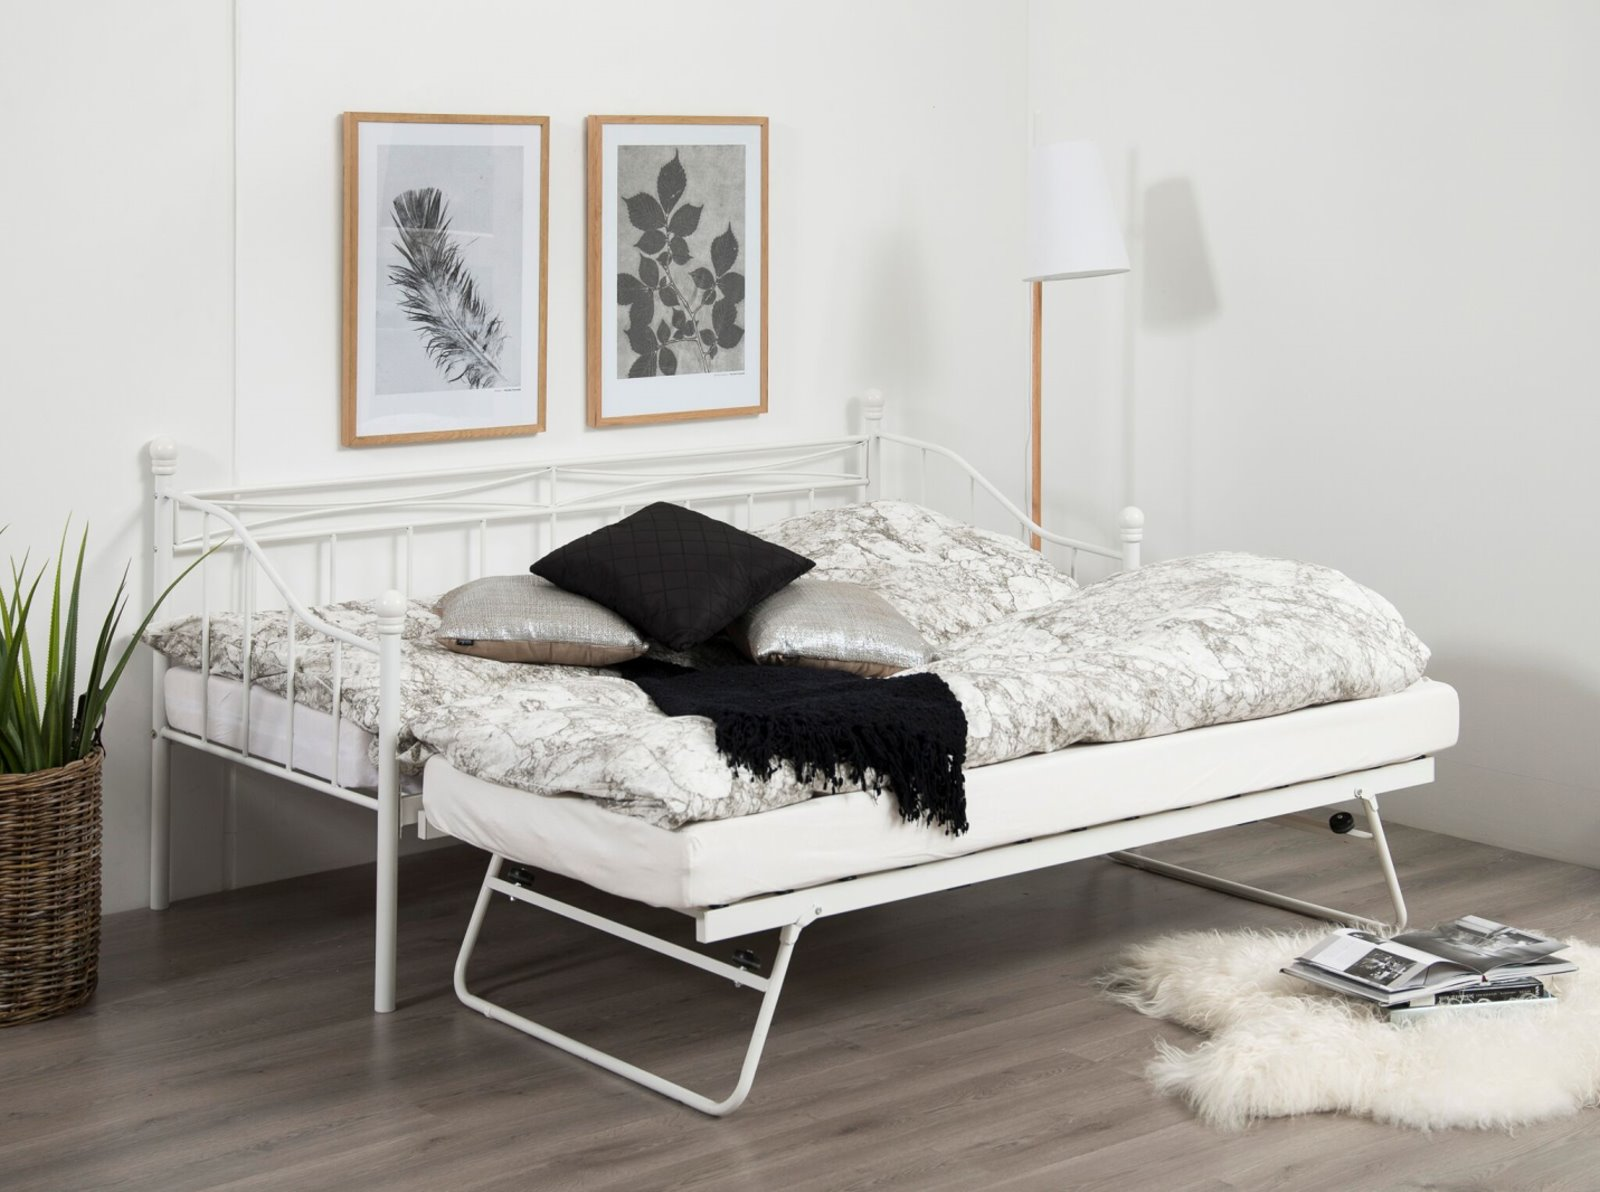 pkline metallbett oline in wei mit auszug 90x190 bett. Black Bedroom Furniture Sets. Home Design Ideas